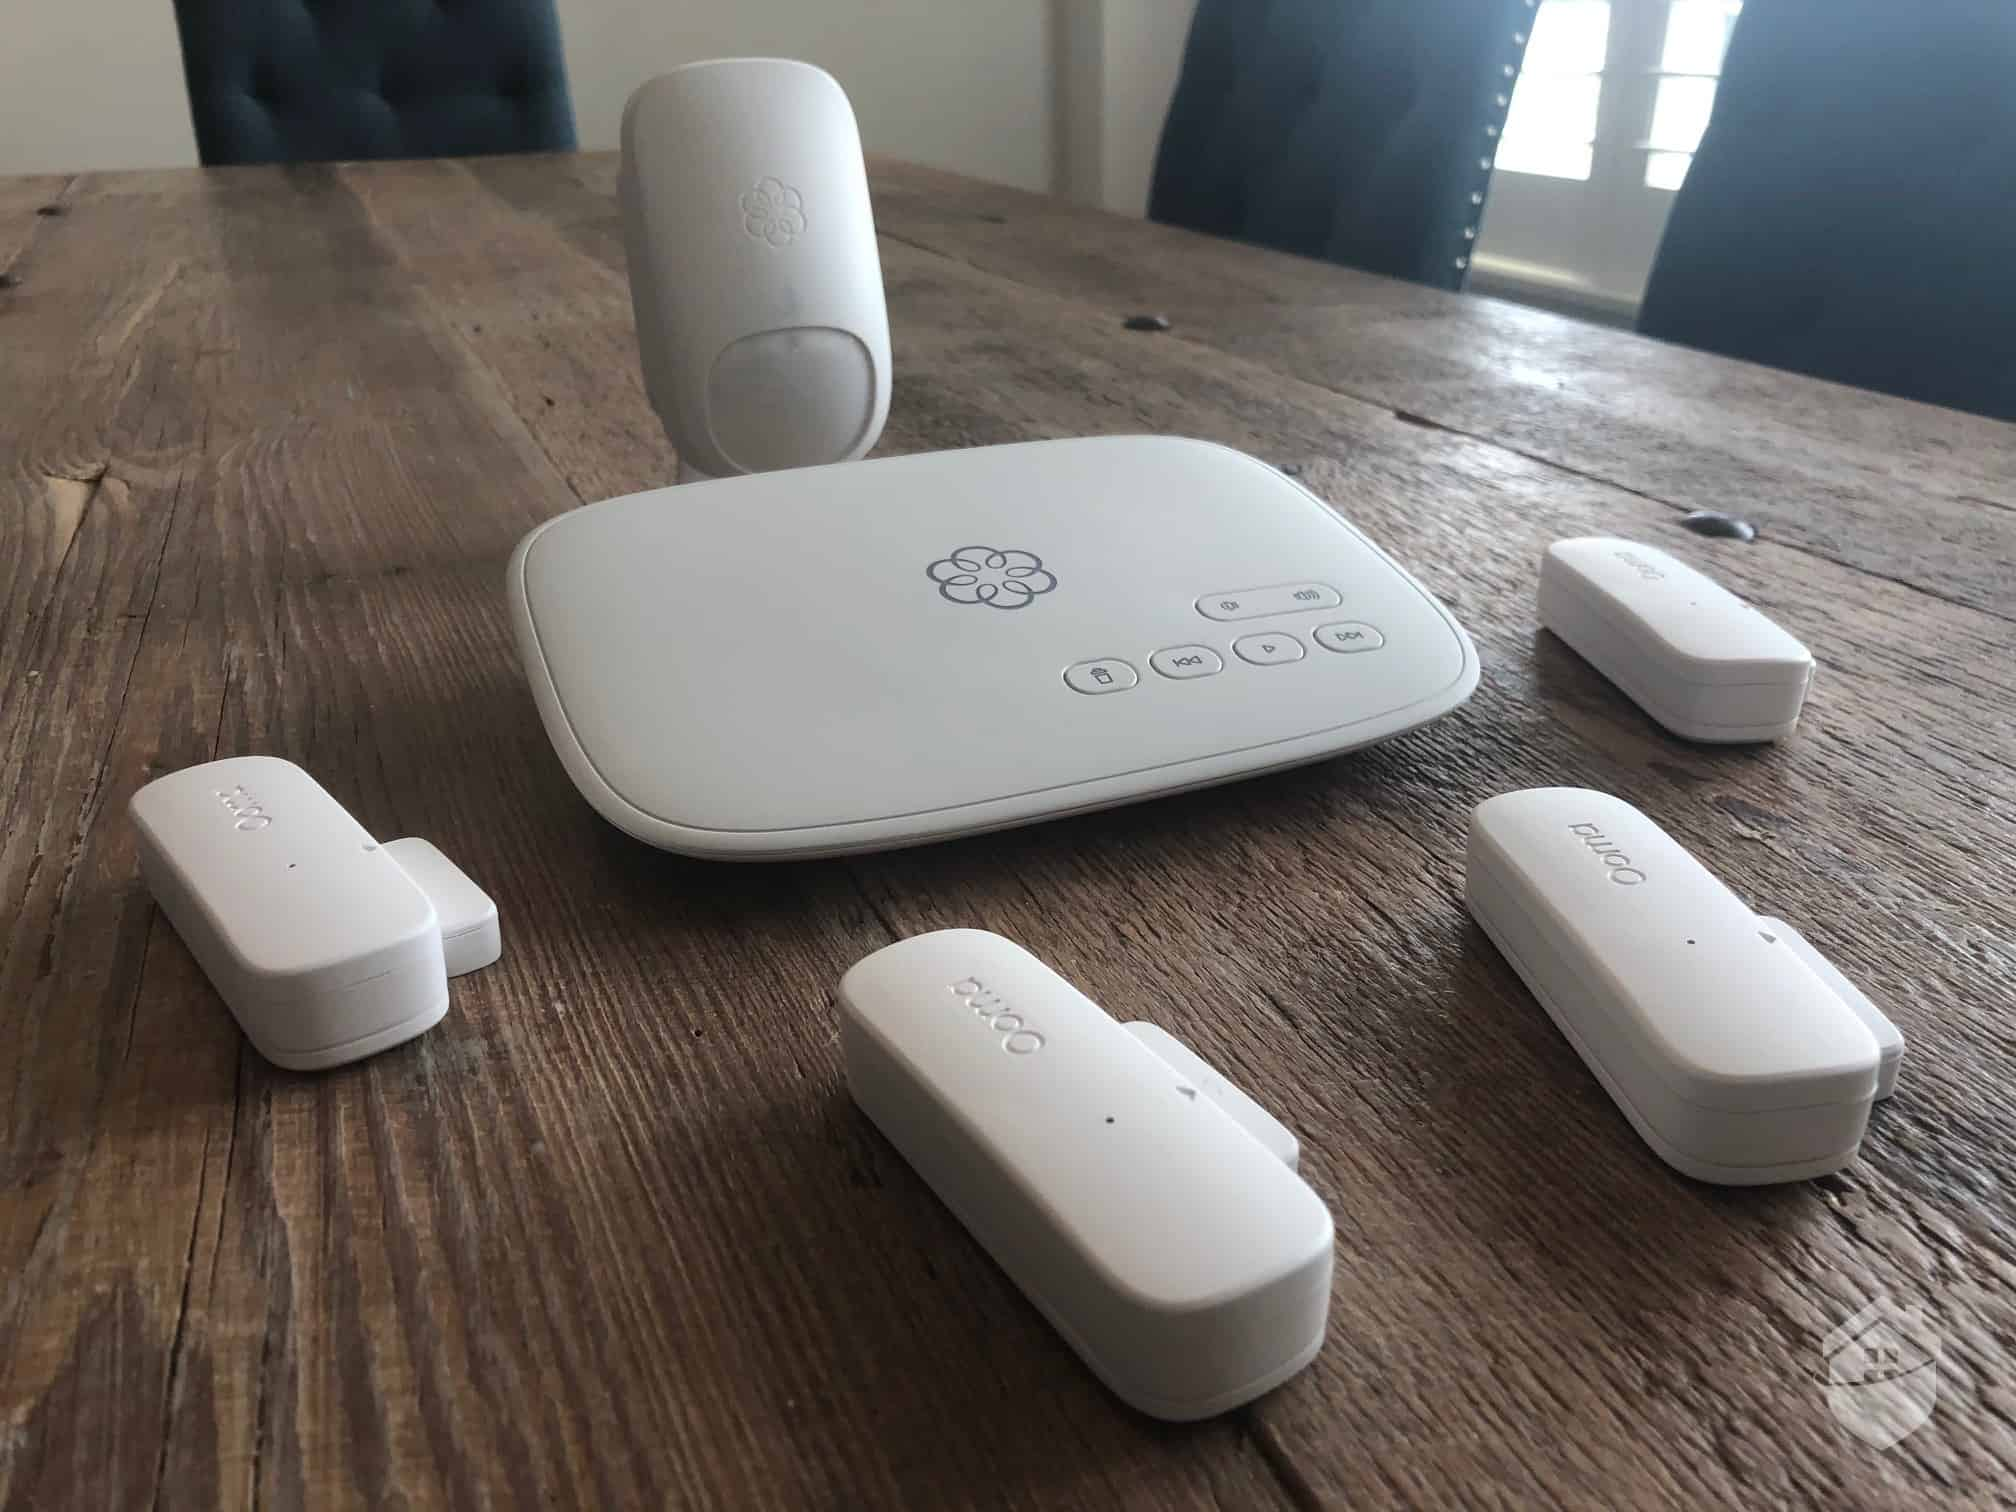 Ooma Smart Security Equipment